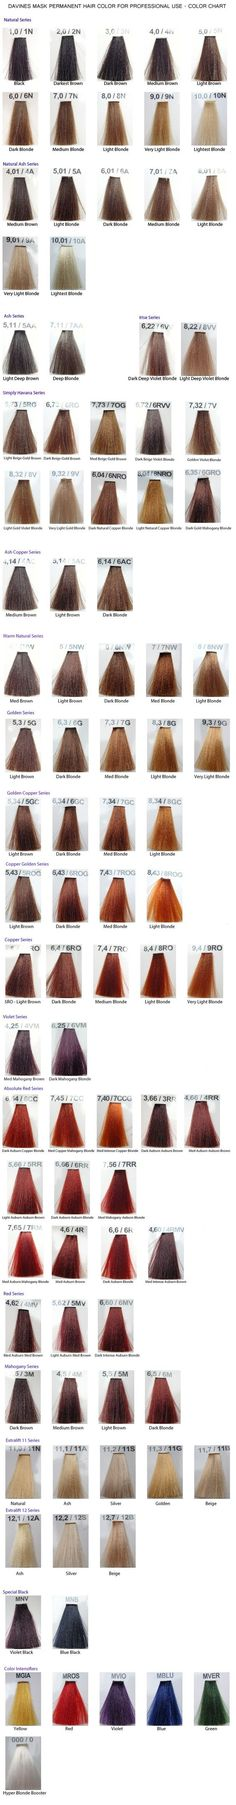 Top Pretty Davines Hair Color Chart Gallery To Make You Look And Pretty Davines Hair Color Chart Gallery 2016 Hairstyles, Haircuts, and Hair Colors